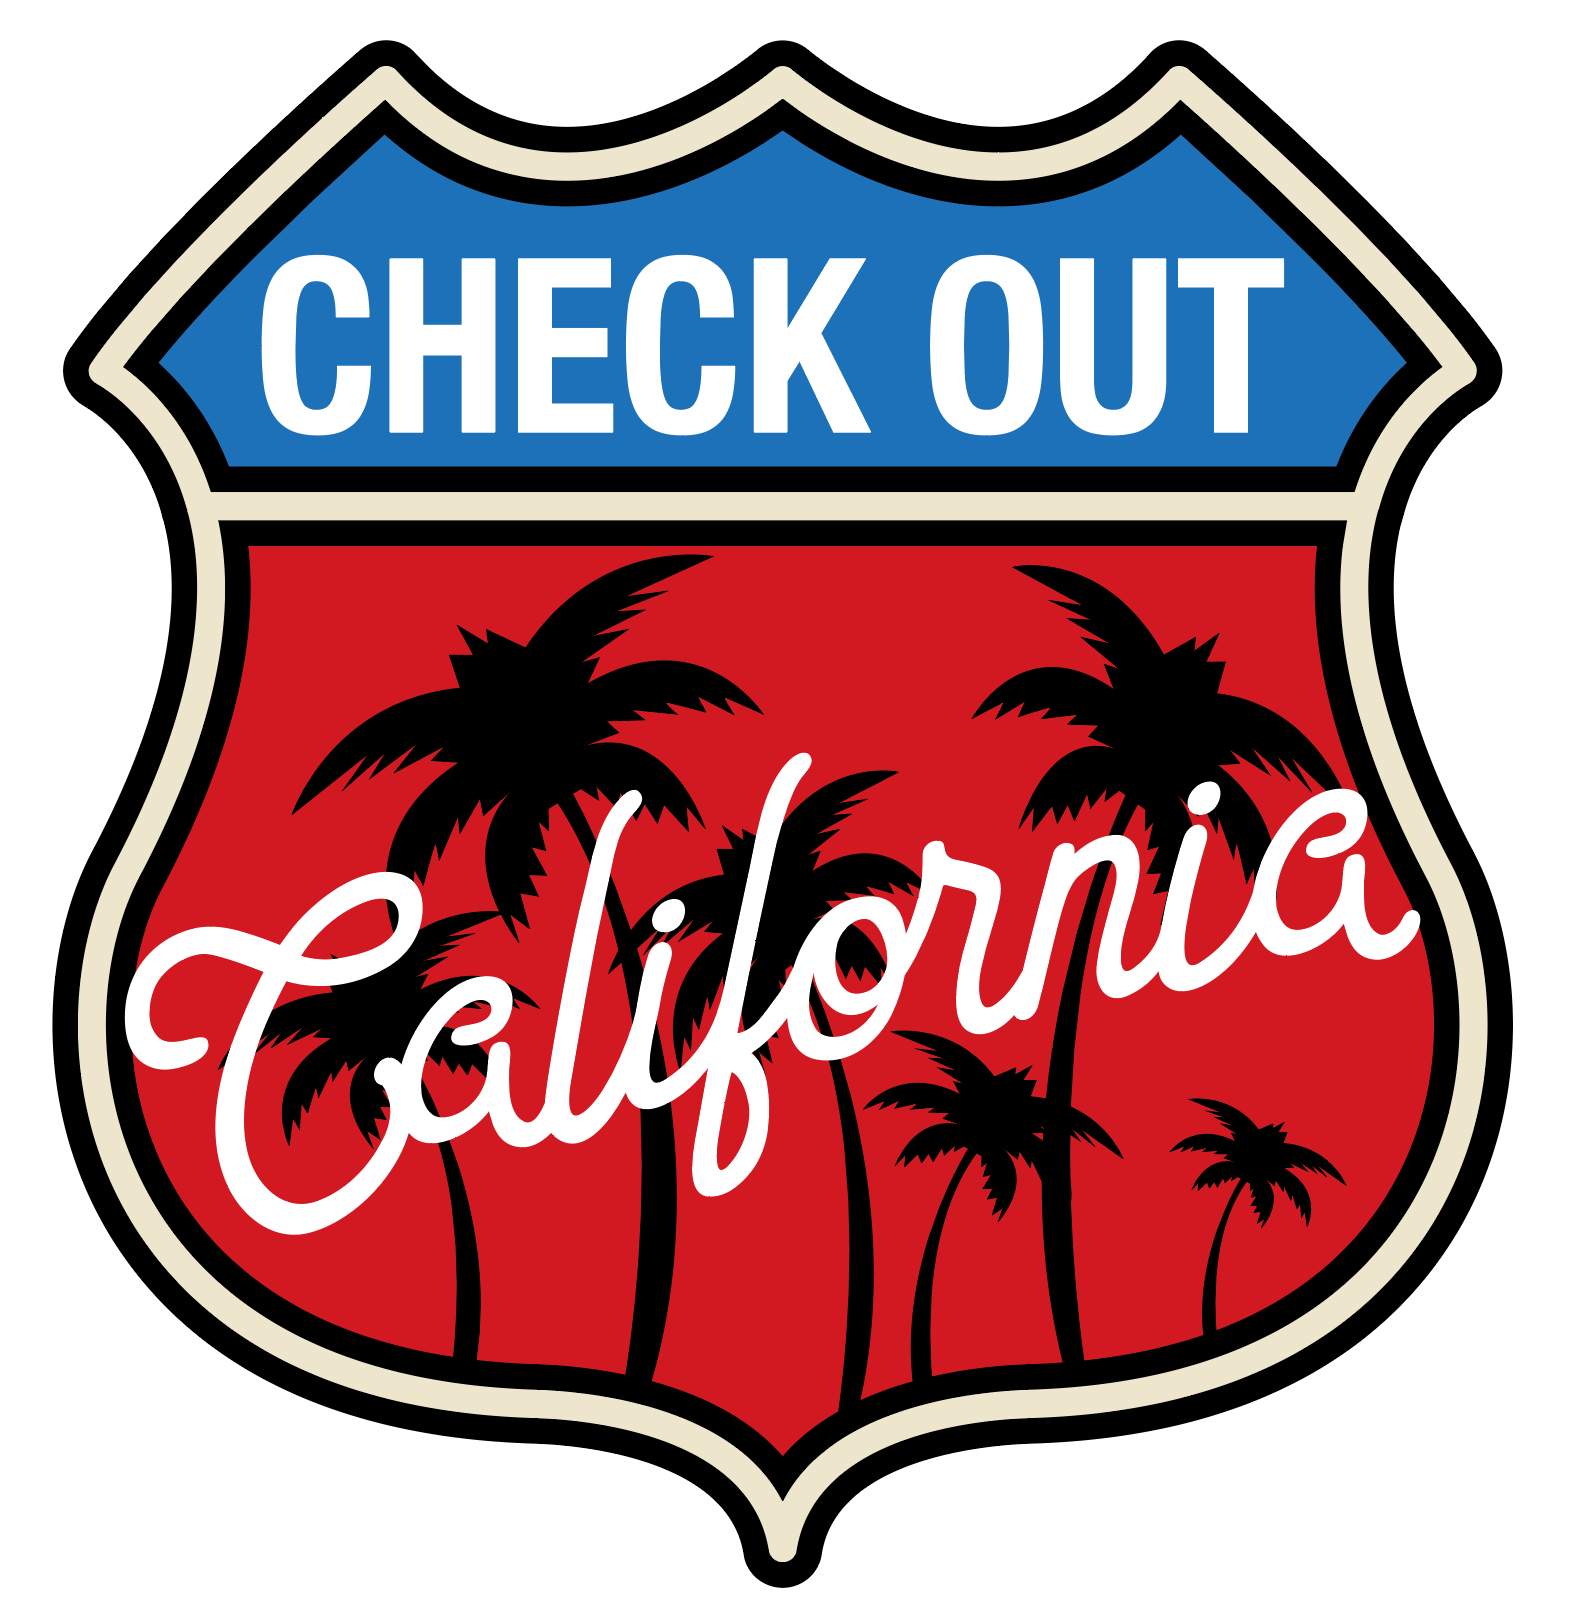 Checkout California